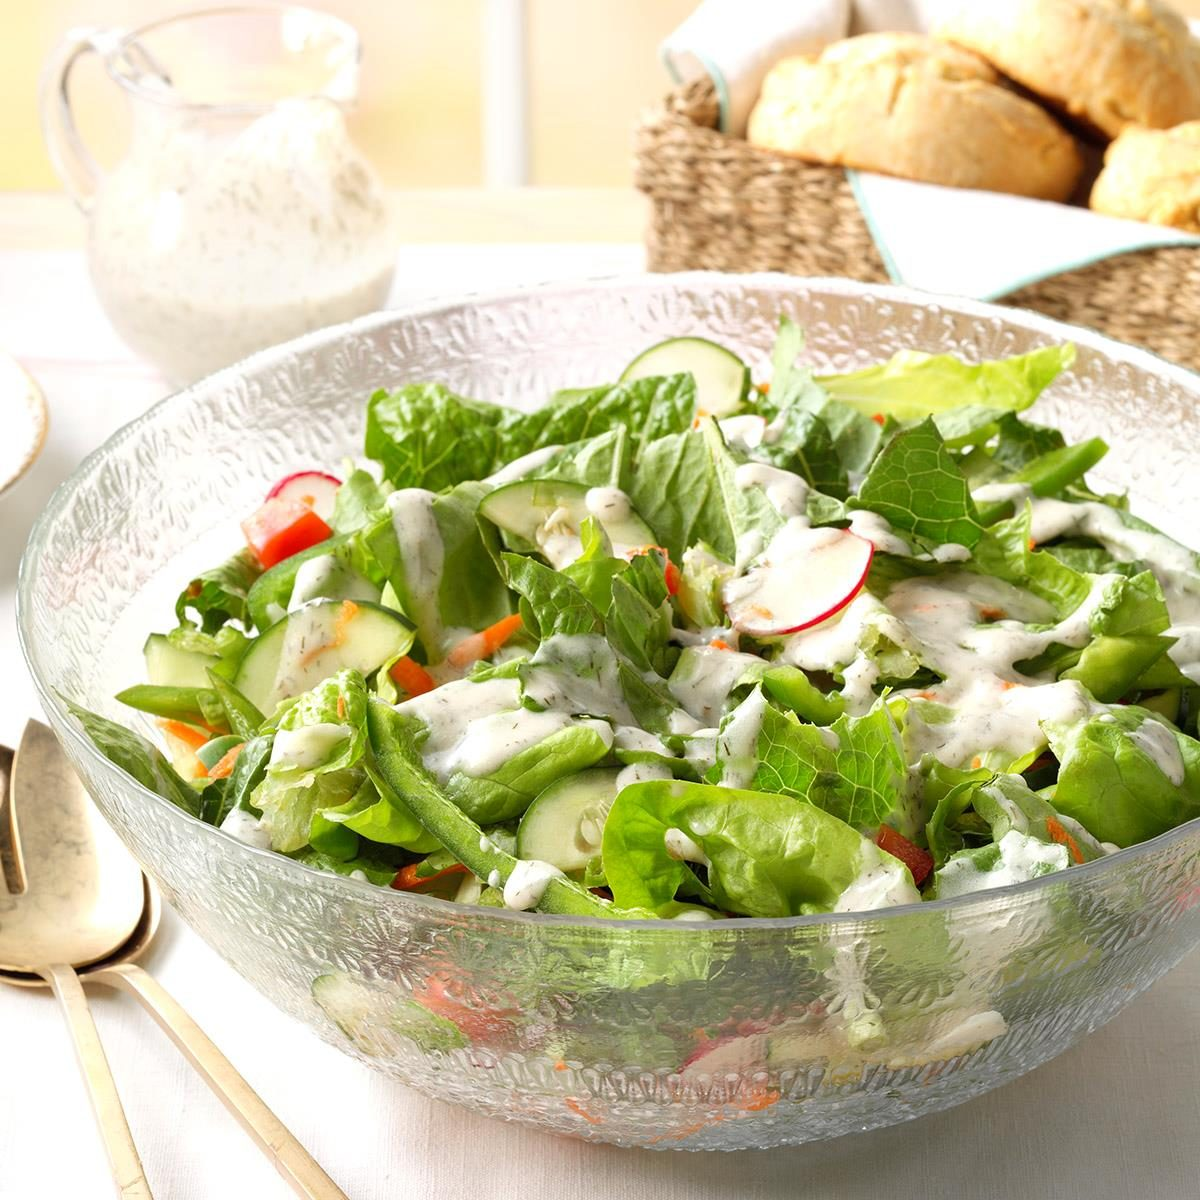 Walden Italian Kitchen: Green Salad With Dill Dressing Recipe